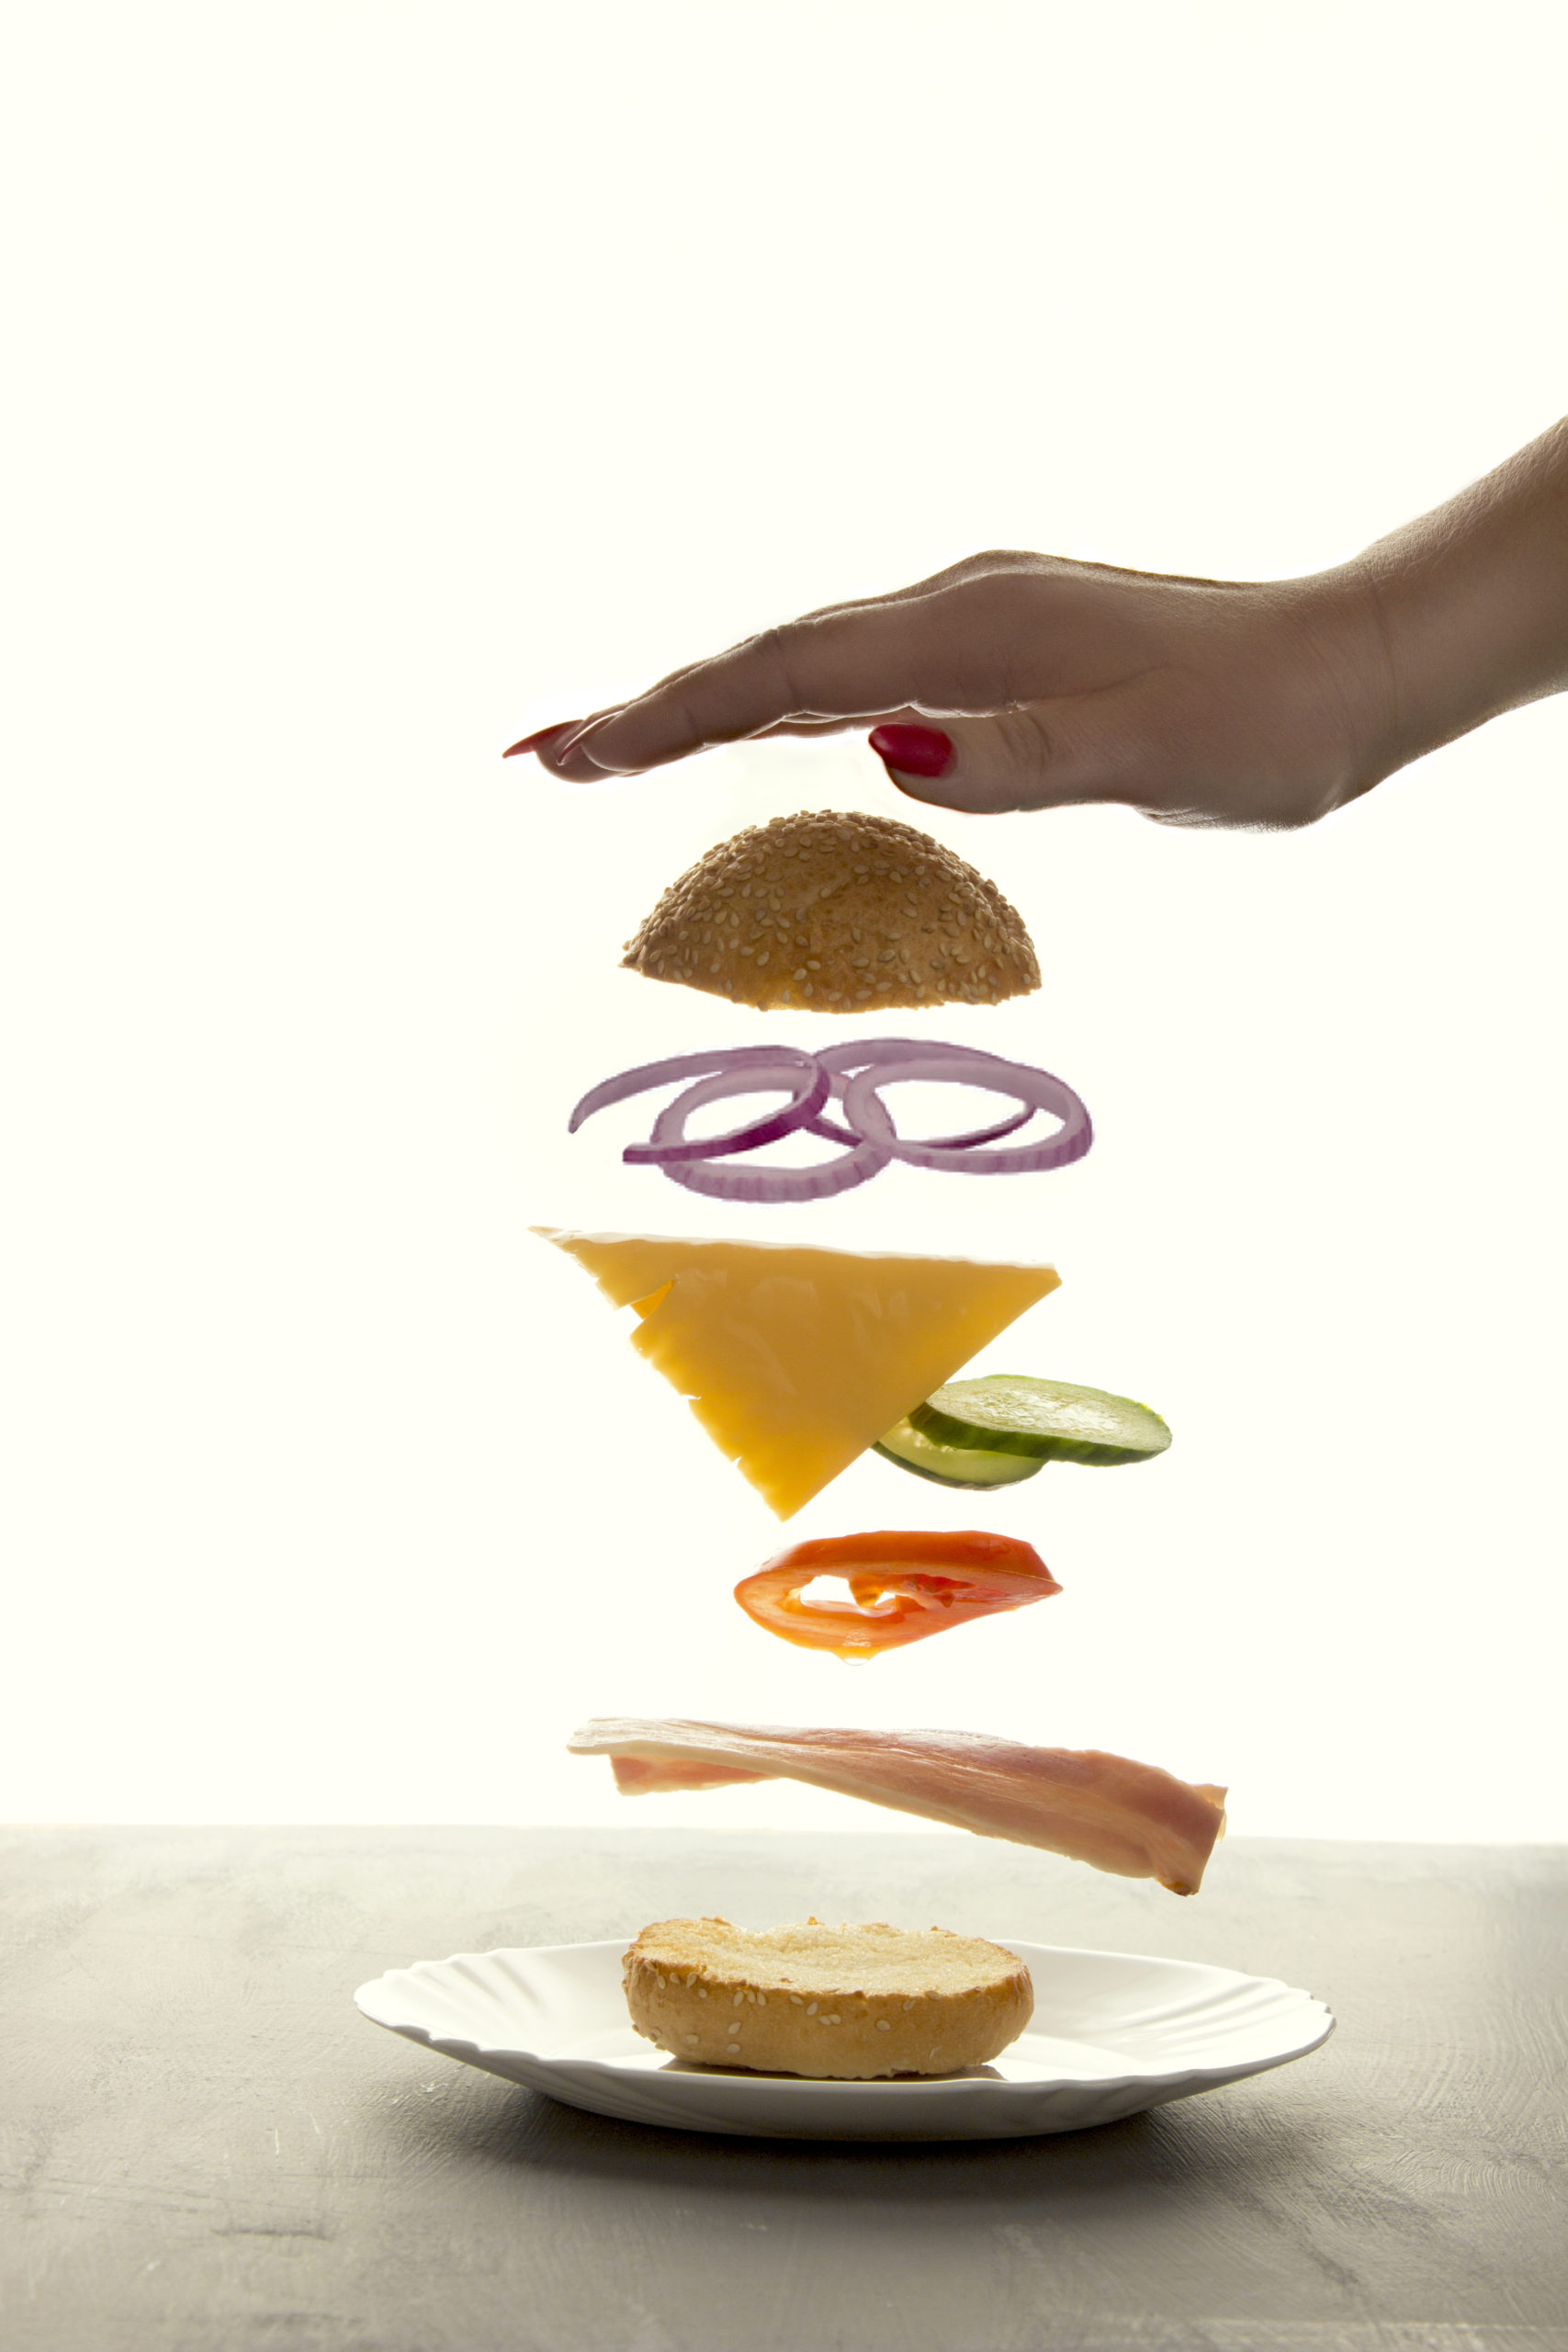 Sandwich floating in the air on a white background. The sandwich rises behind the woman's hand, the power of levitation.